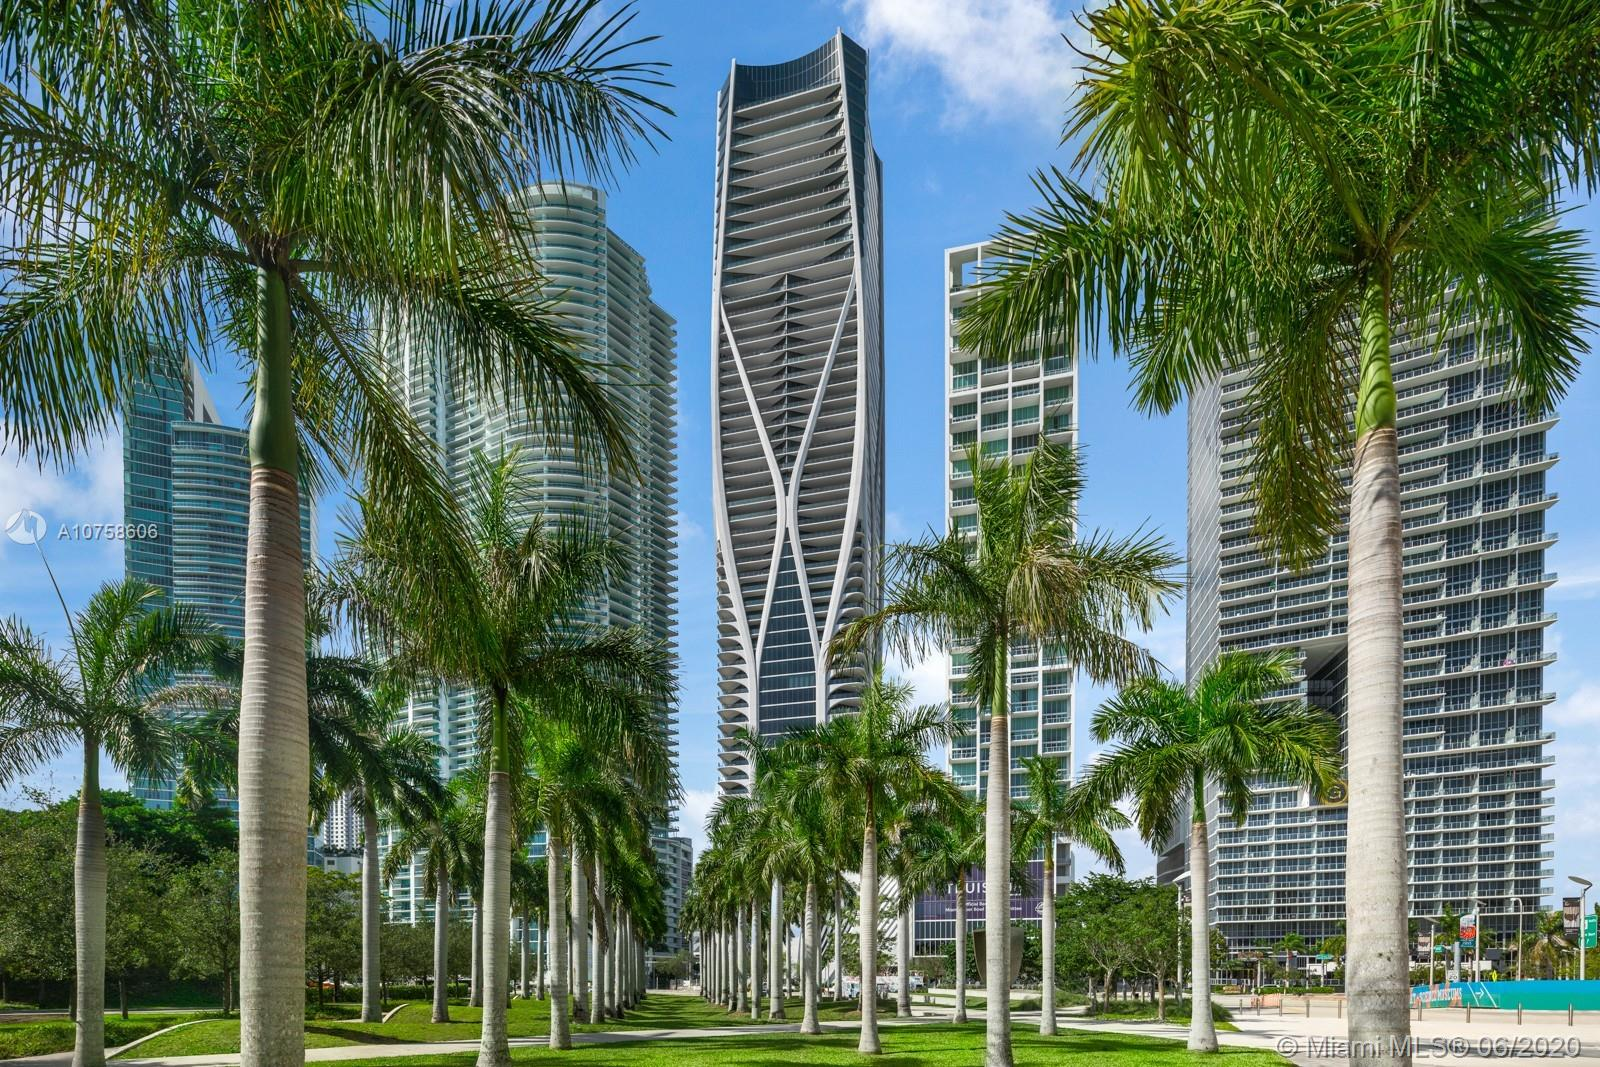 Main Property Image For 1000 Biscayne Blvd #5001-full floor